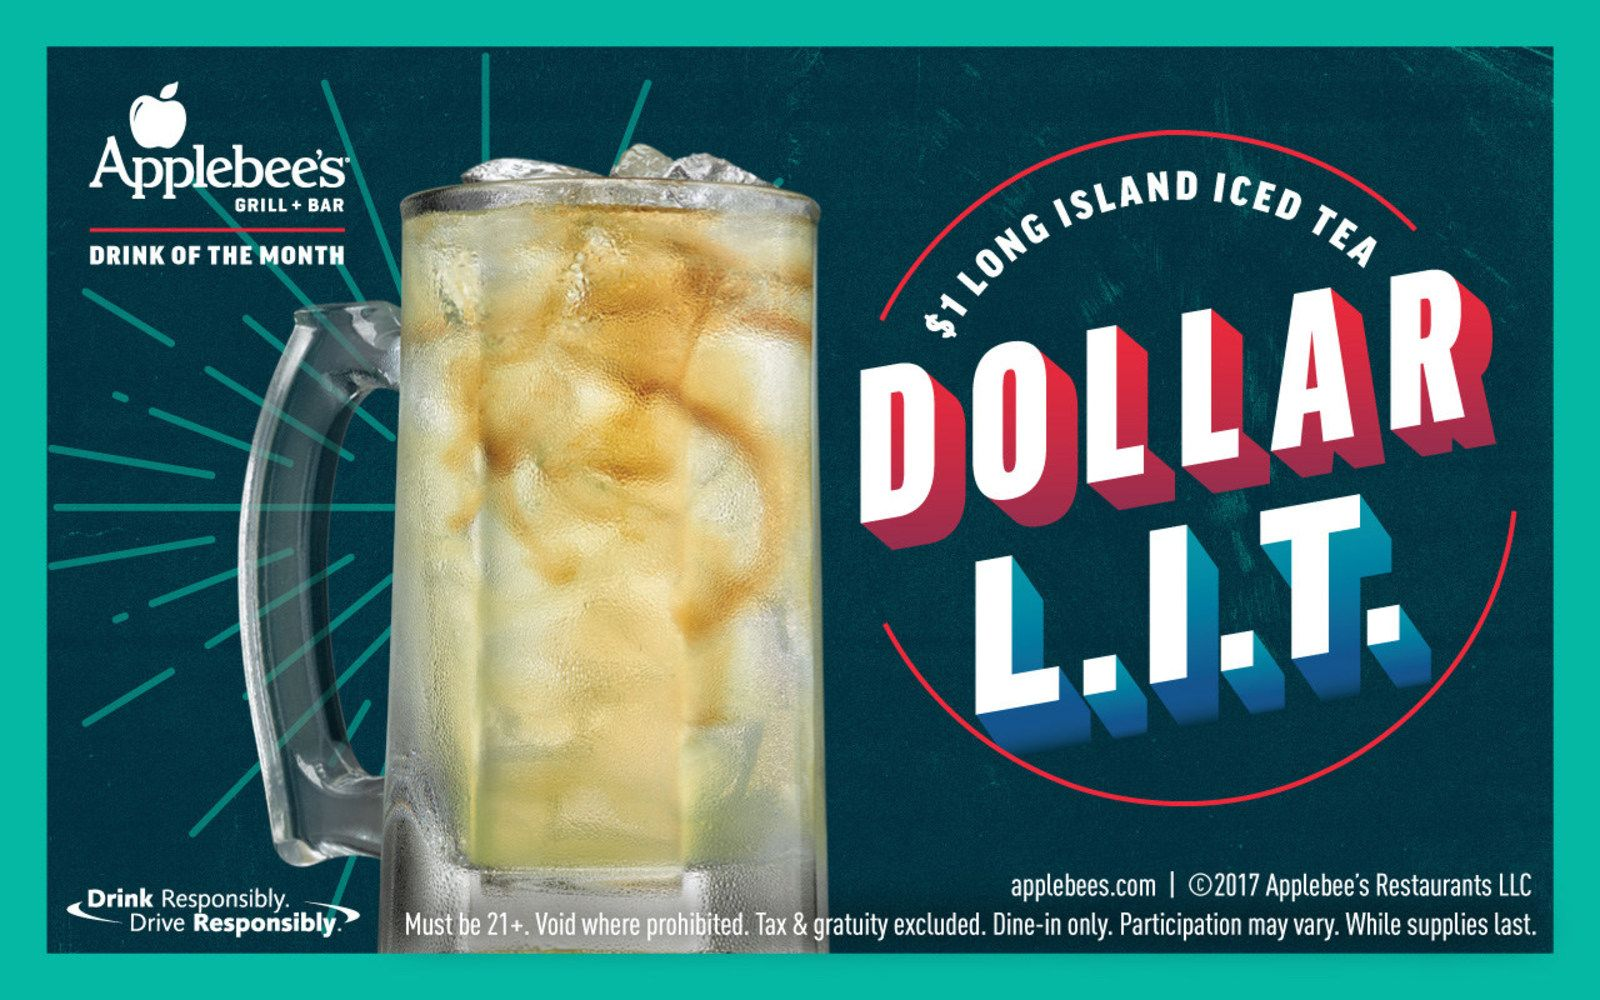 Applebee's offering $1 Long Island Iced Tea for the month of December